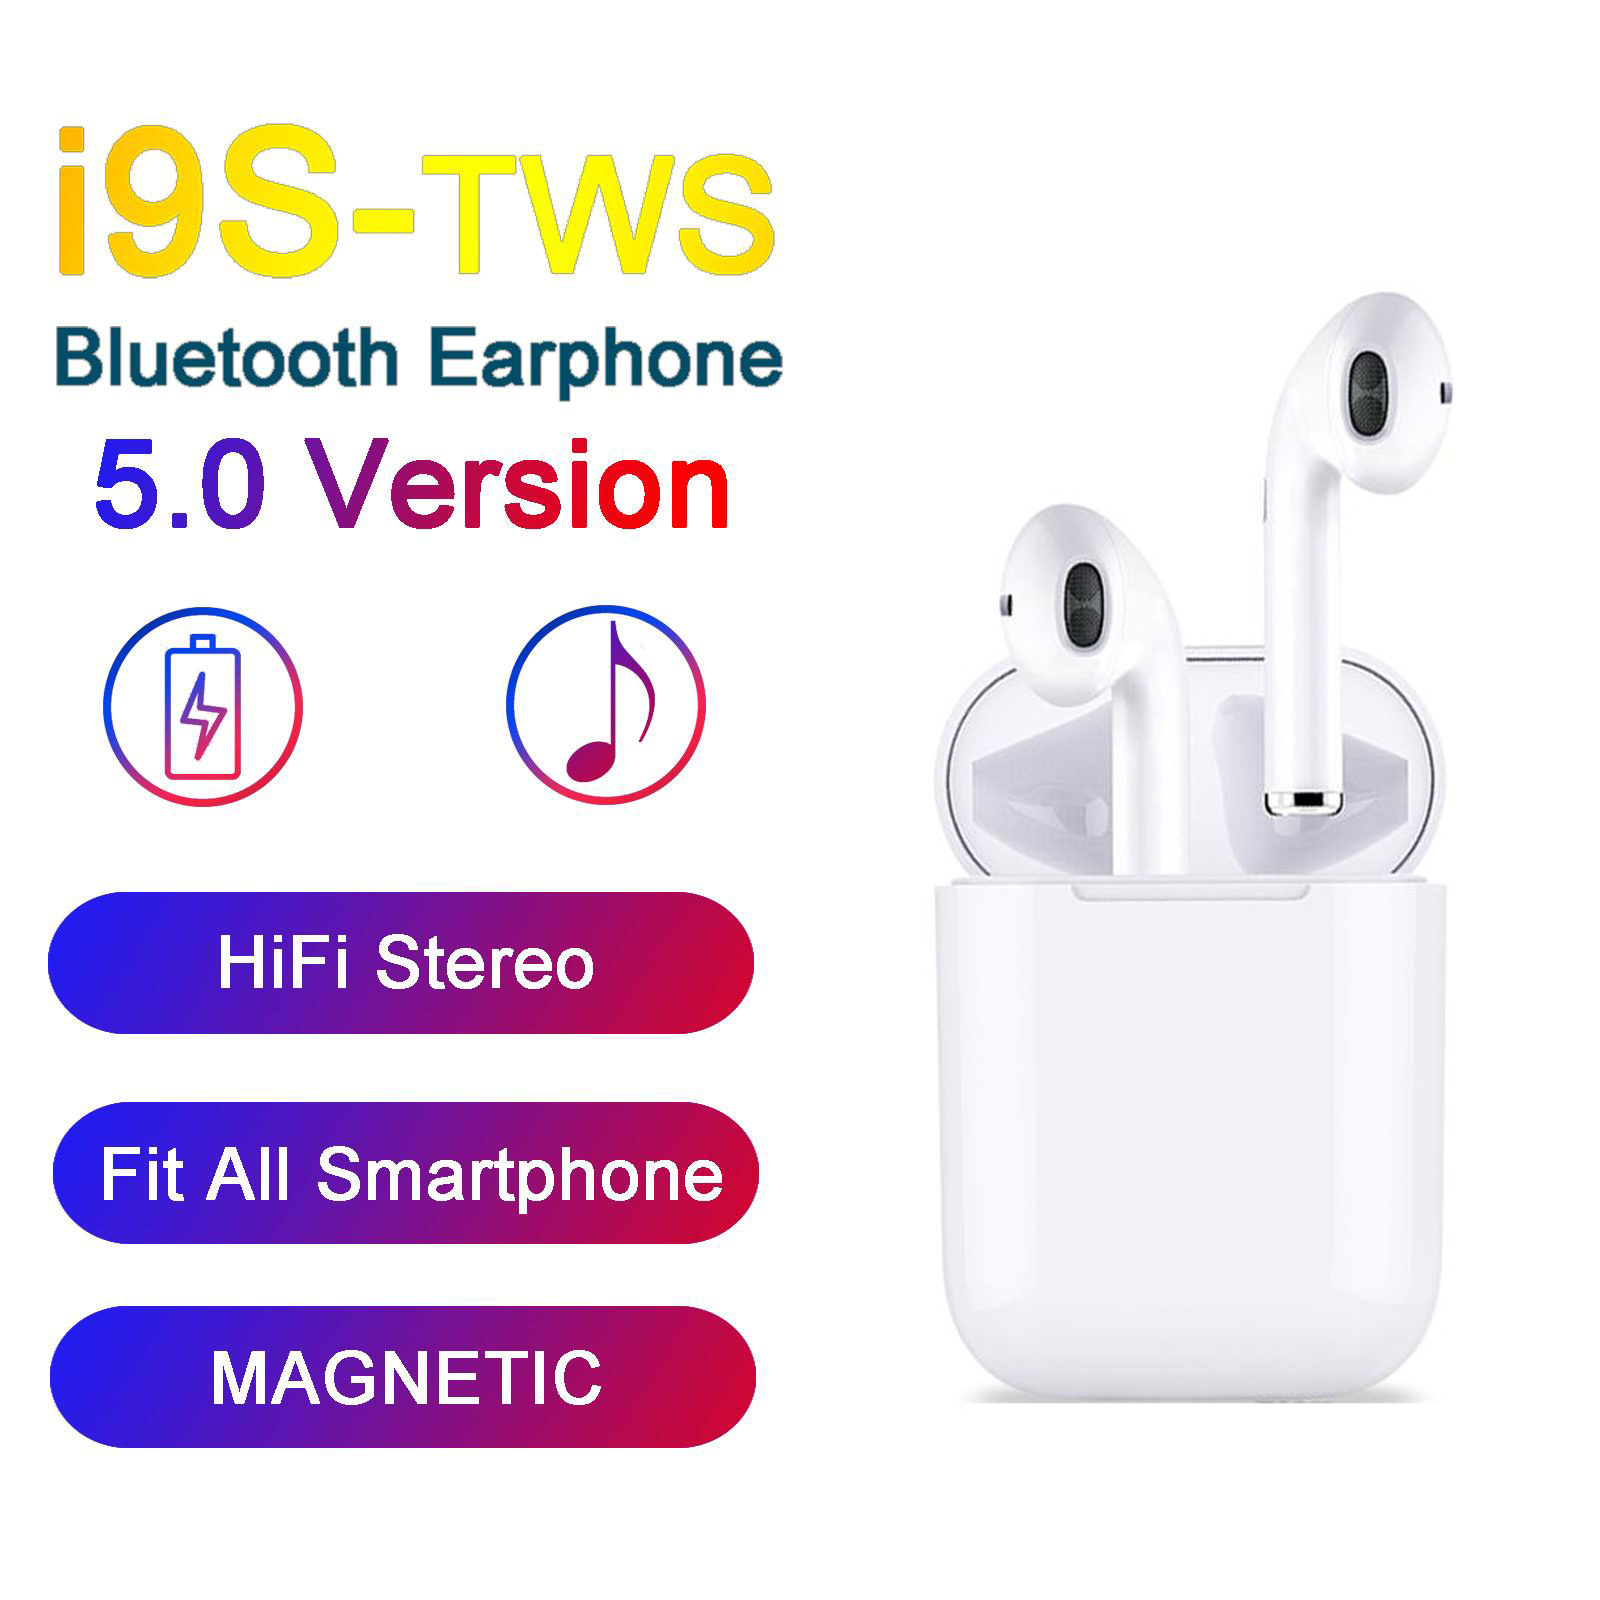 Mini I9S <font><b>TWS</b></font> Headphones Wireless <font><b>5.0</b></font> <font><b>Bluetooth</b></font> Earphones For Iphone X 8 Plus Samsung S10 S9 Xiaomi 9 Earbuds PK I7S I12 <font><b>I11</b></font> image